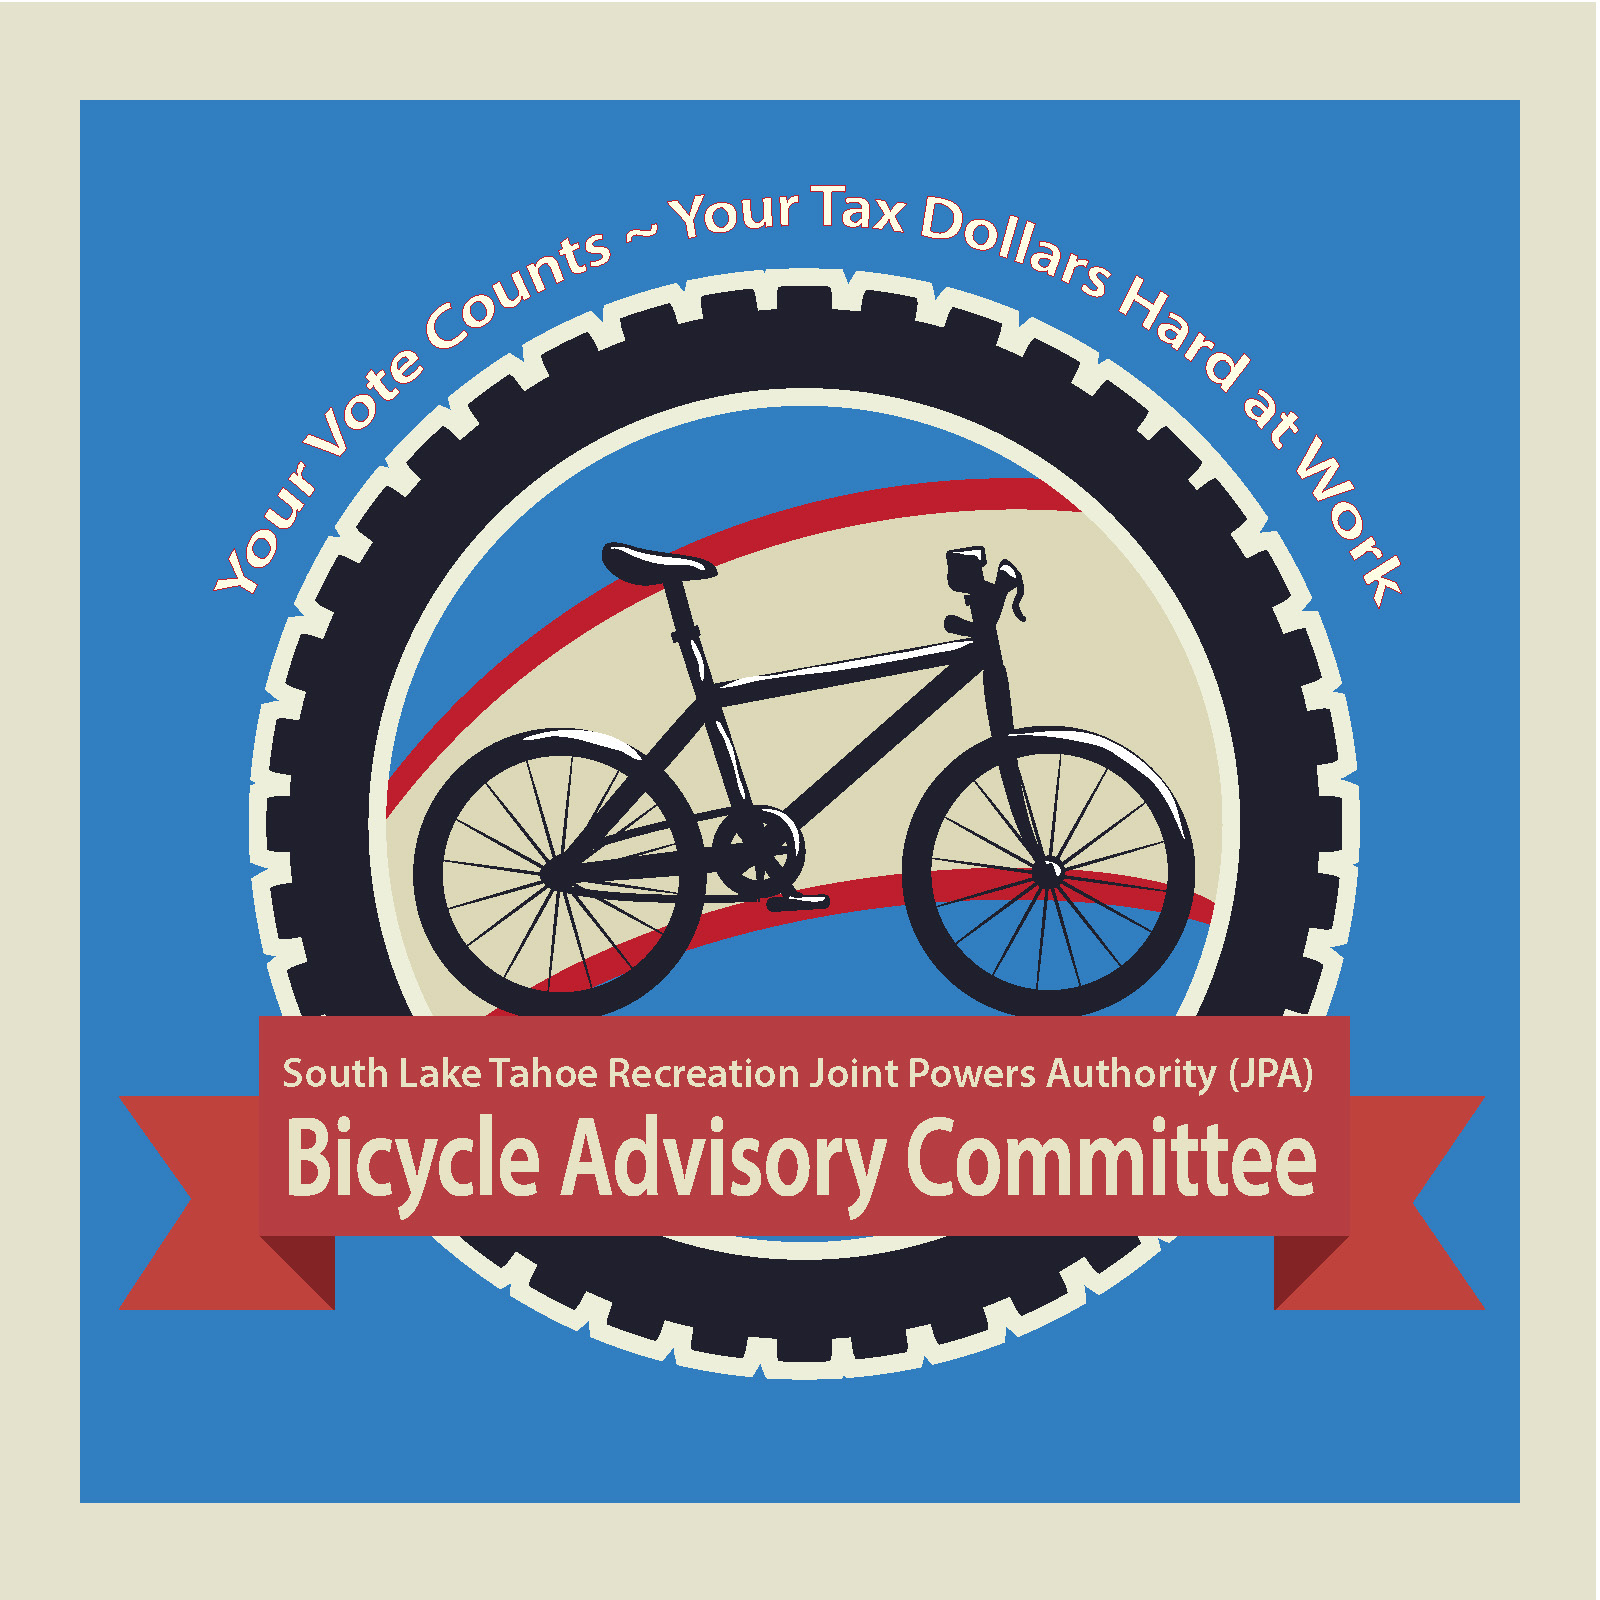 Bicycle Advisory Committee logo